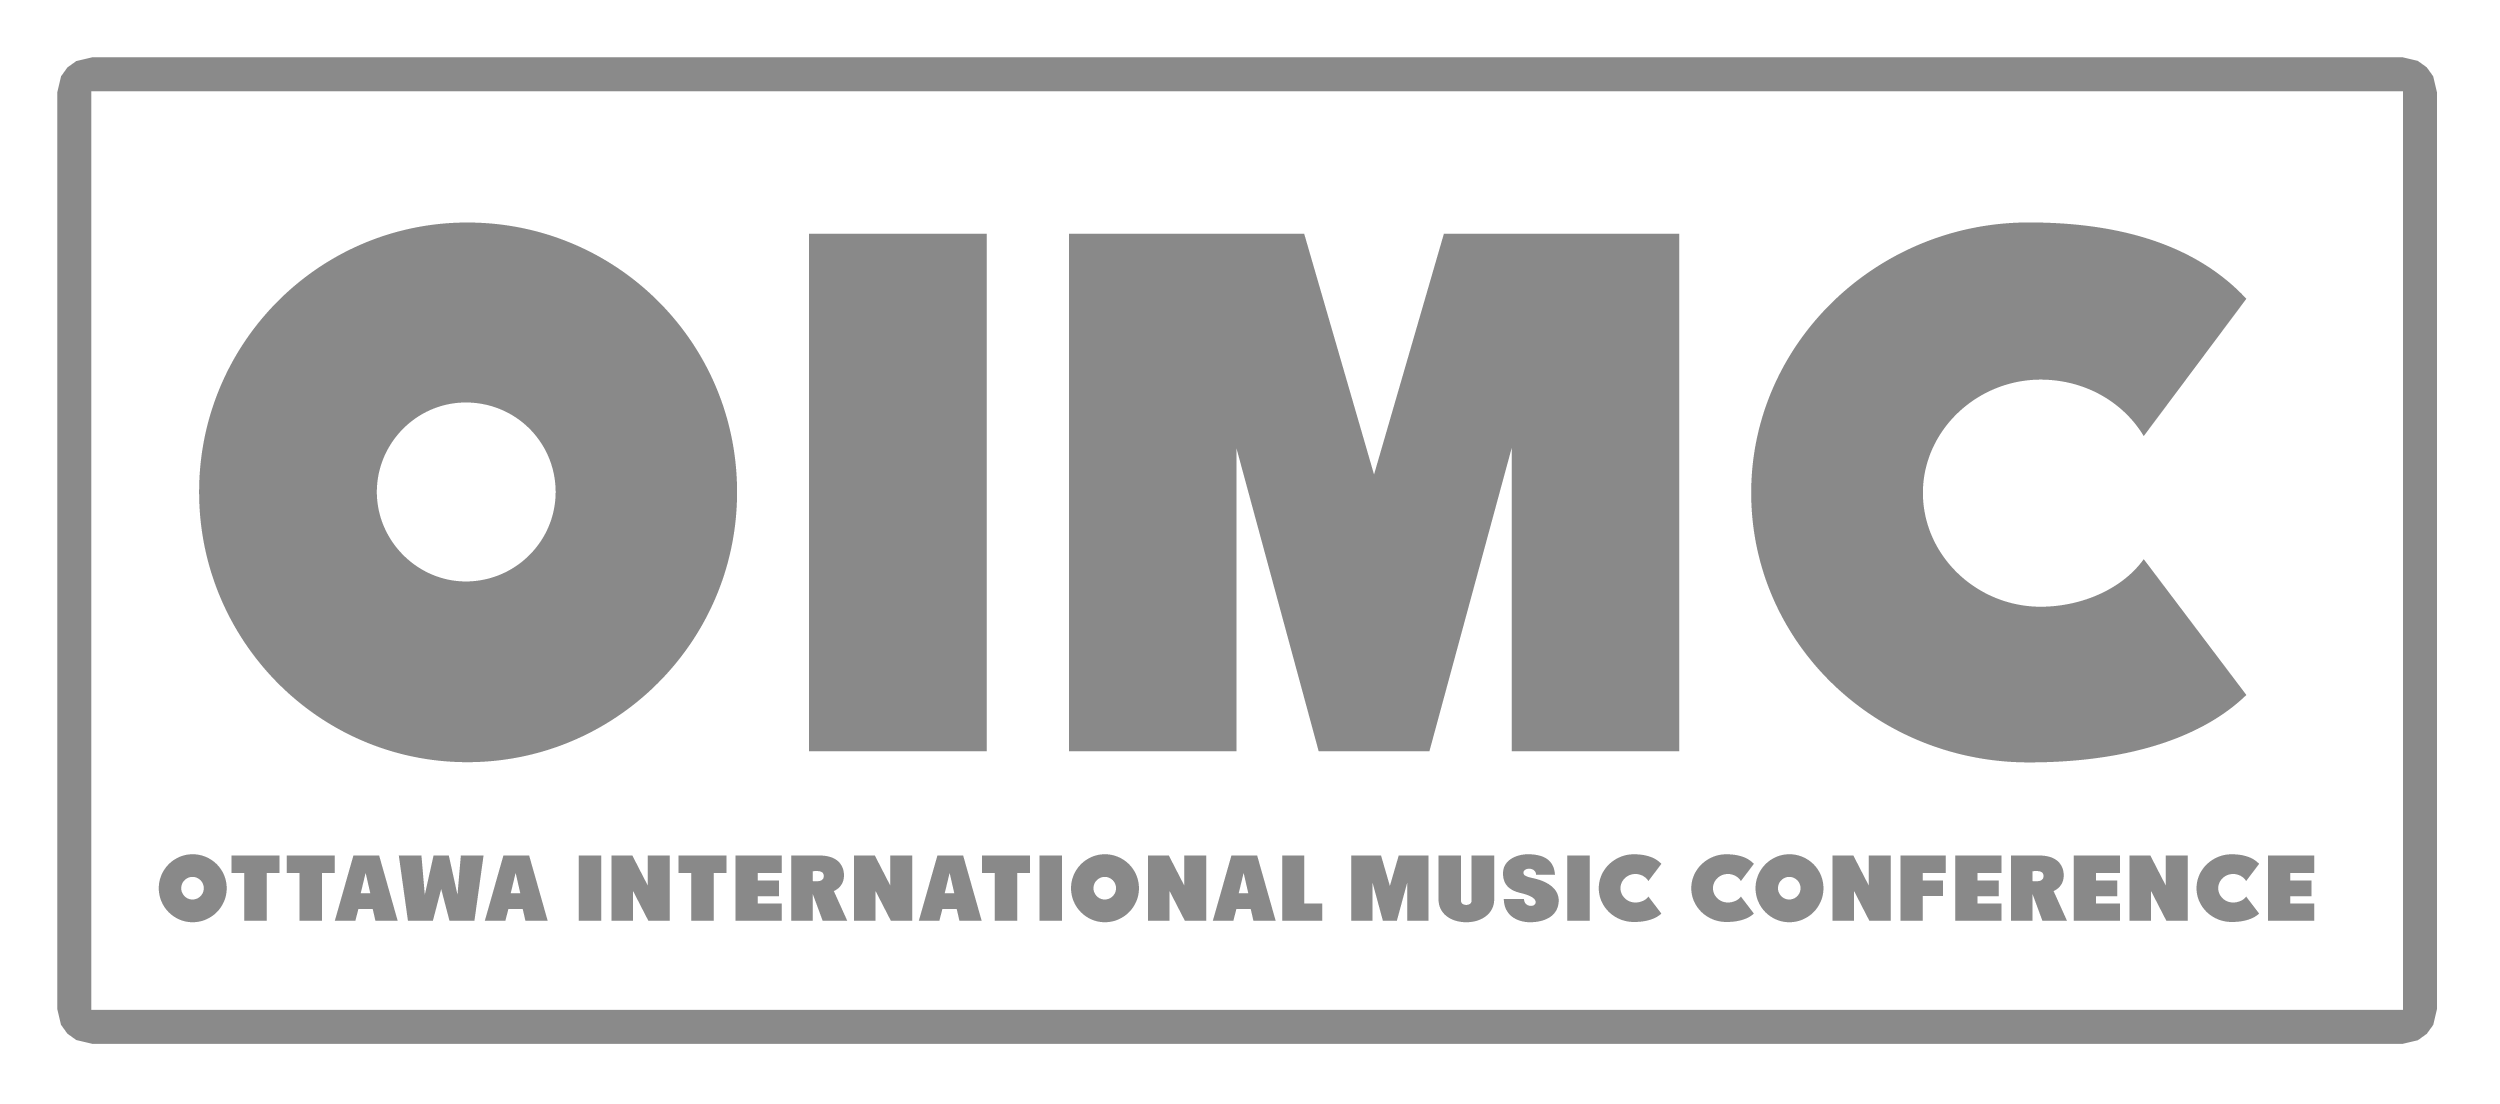 OIMC. Ottawa International Music Festiva. Events. Ottawa Ontario Canada. Swag. Merch. Promotional merchandise. All Things Made. Tshirst. Screen printing. Branding. Promo. Swag. glassware. keychains.